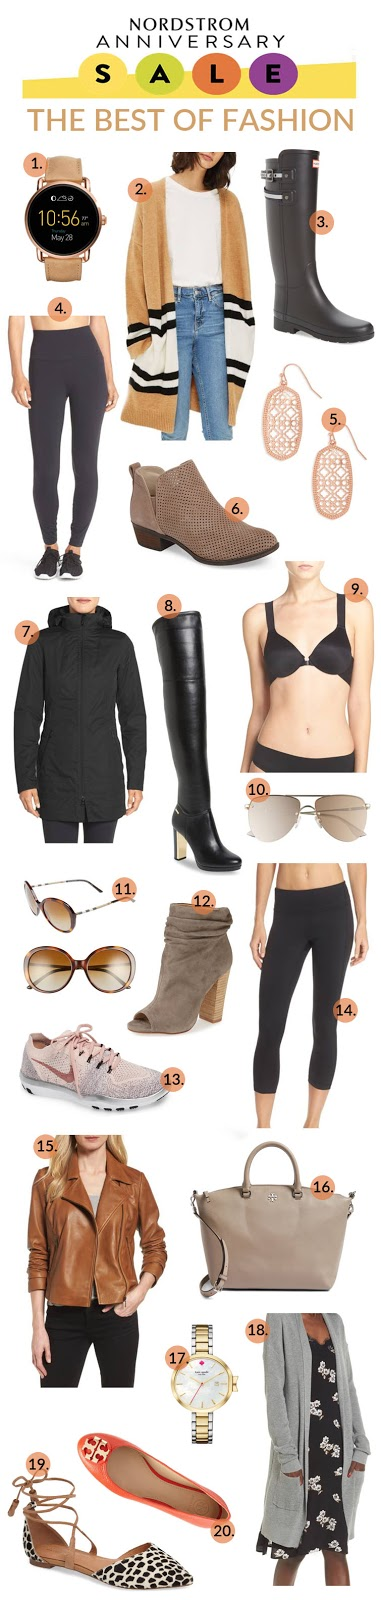 The Best of Fashion Nordstrom Anniversary Sale Picks by fashion blogger Laura of Walking in Memphis in High Heels